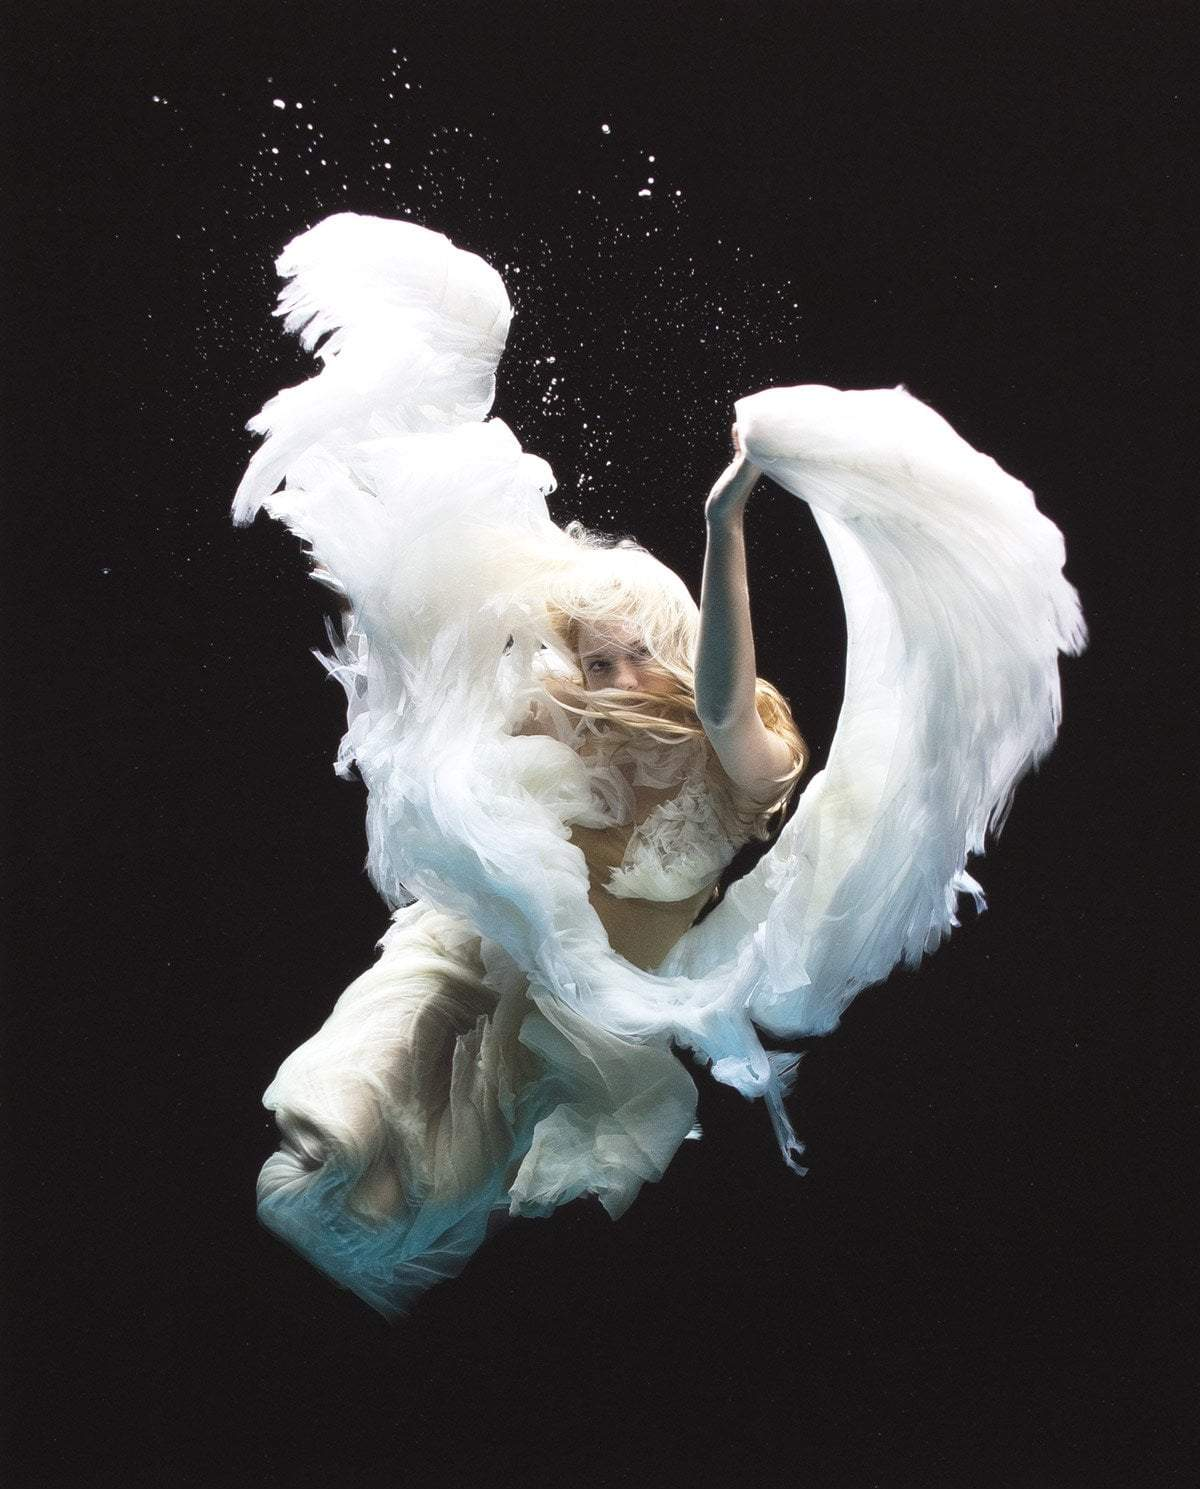 Angel 2 - Edition Zena Holloway